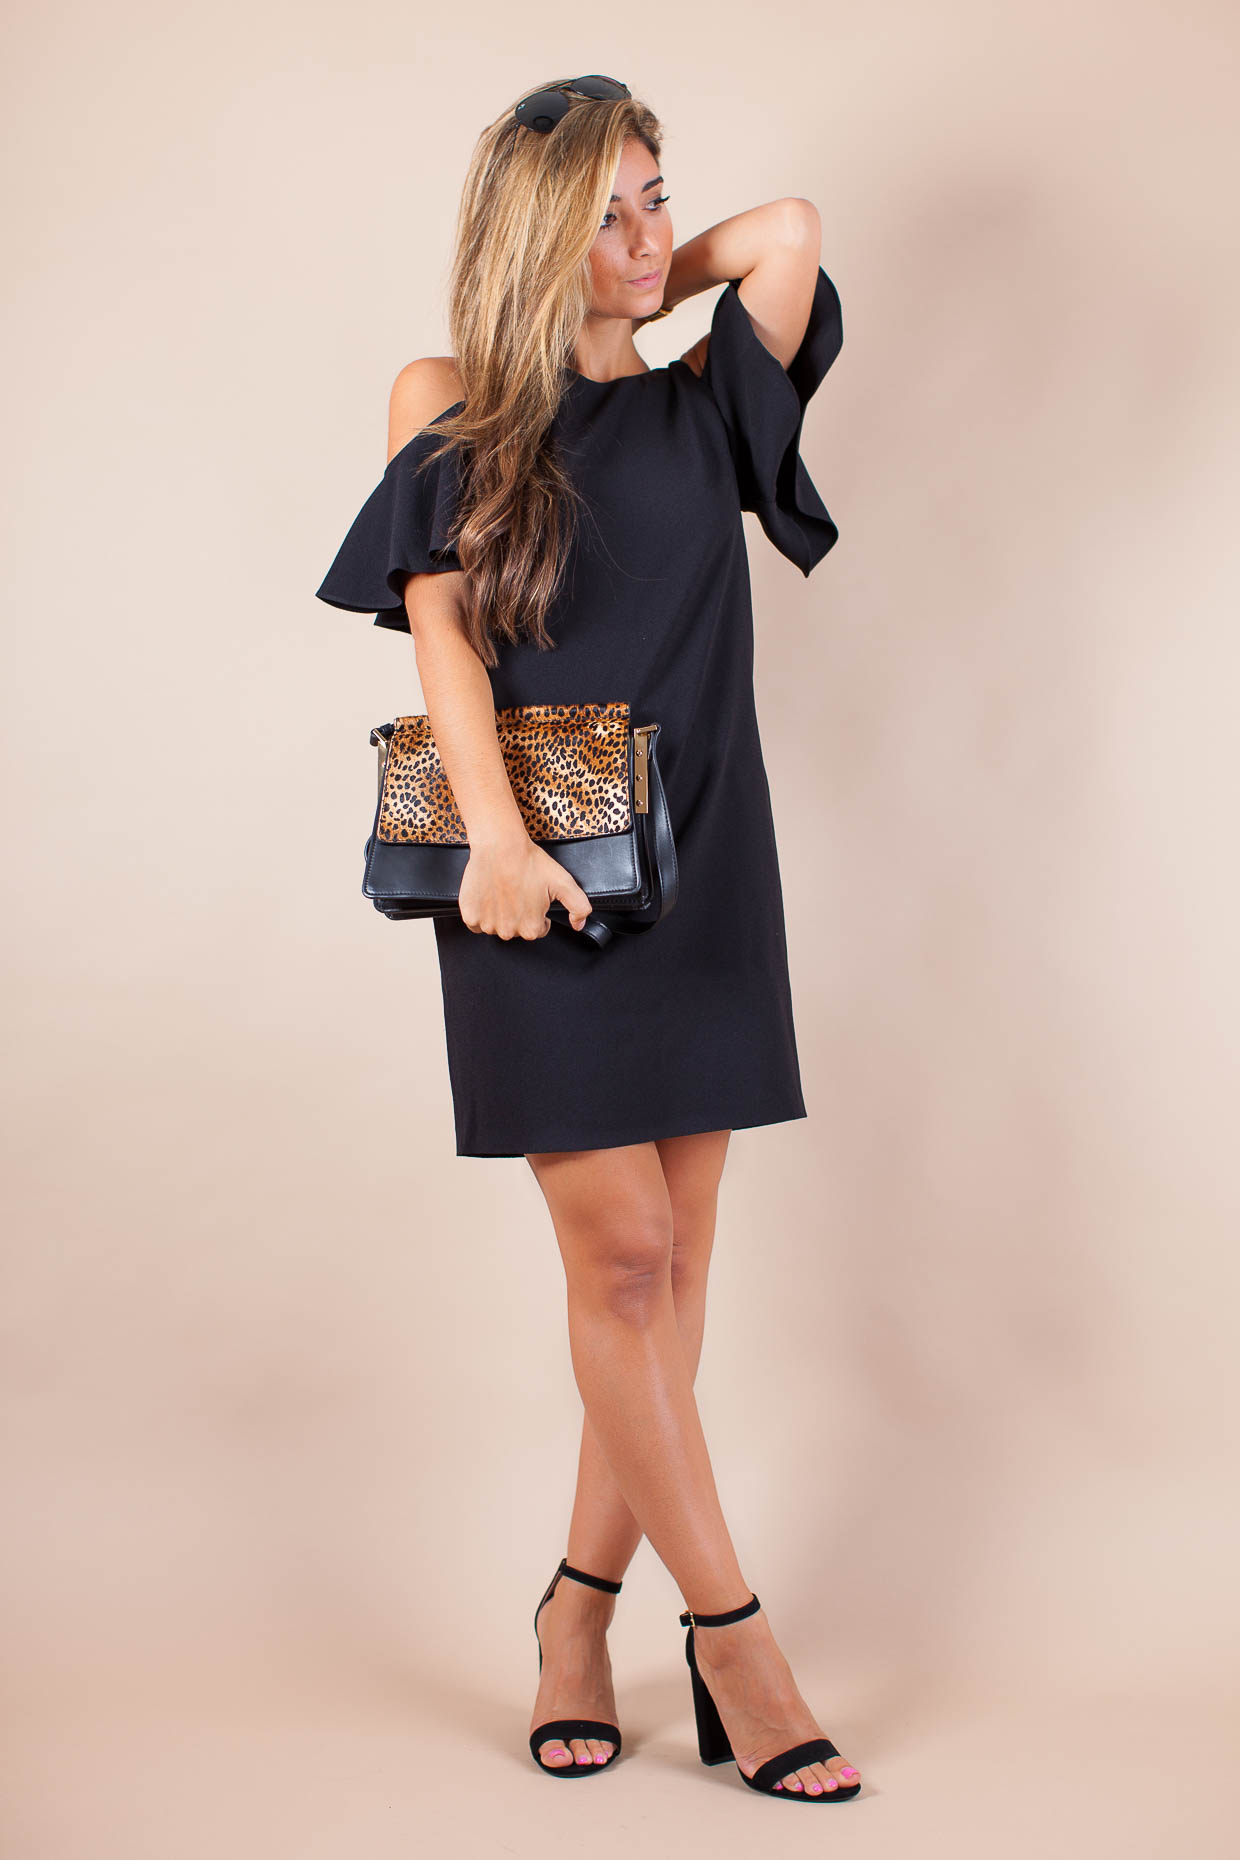 Fashion Blogger The Darling Detail is wearing a Chelsea28 'Peek-A-Boo' Cold Shoulder Shift Dress, Steve Madden 'Carrson' Sandals, Ray-Ban 'Original Aviator' Sunglasses, and holding a Vince Camuto 'Abril' Leather Shoulder Bag.